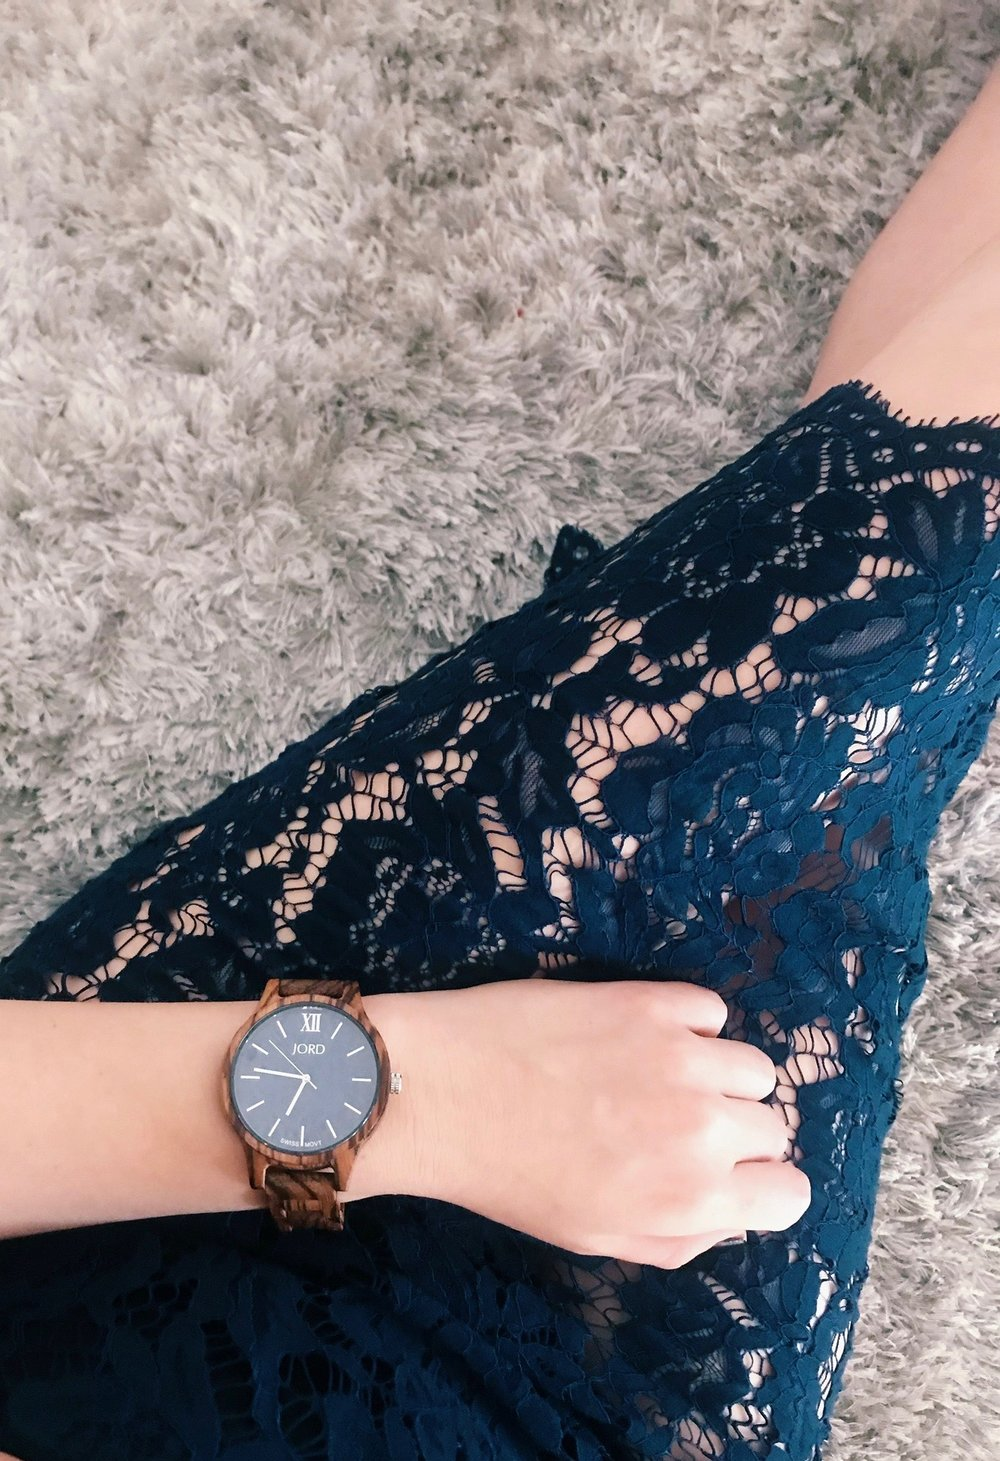 with this girly outfit, I love the look of a man's watch.. and it's also blue! - Find this JORD wood watch here